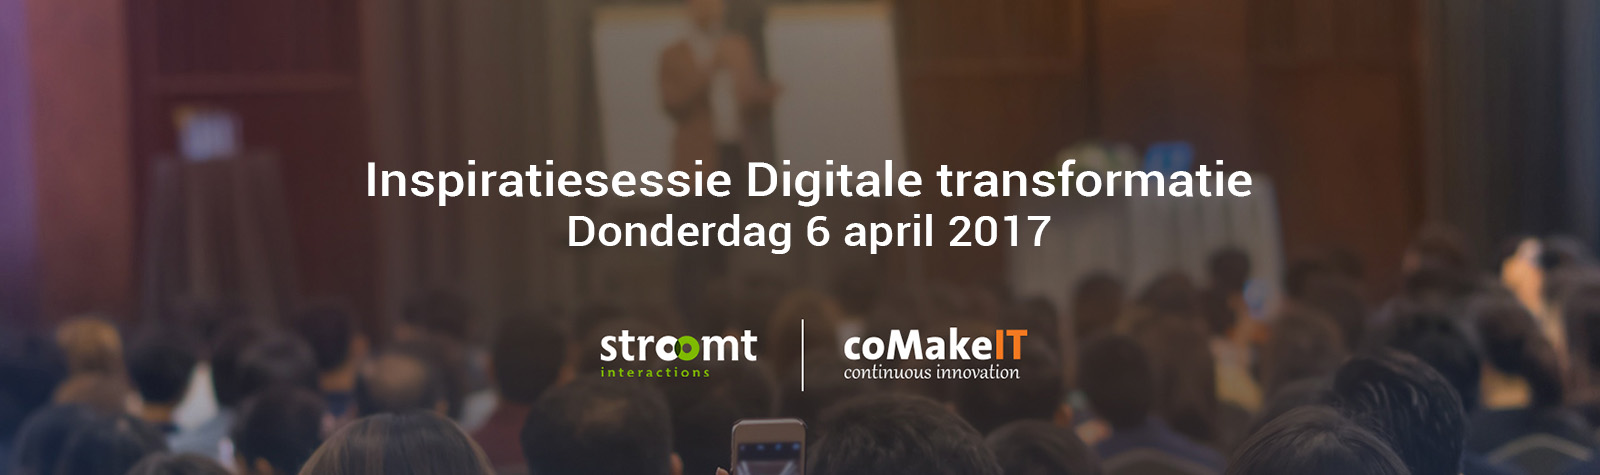 coMakeIT | Inspiratiesessie Digitale transformatie Donderdag 6 april 2017